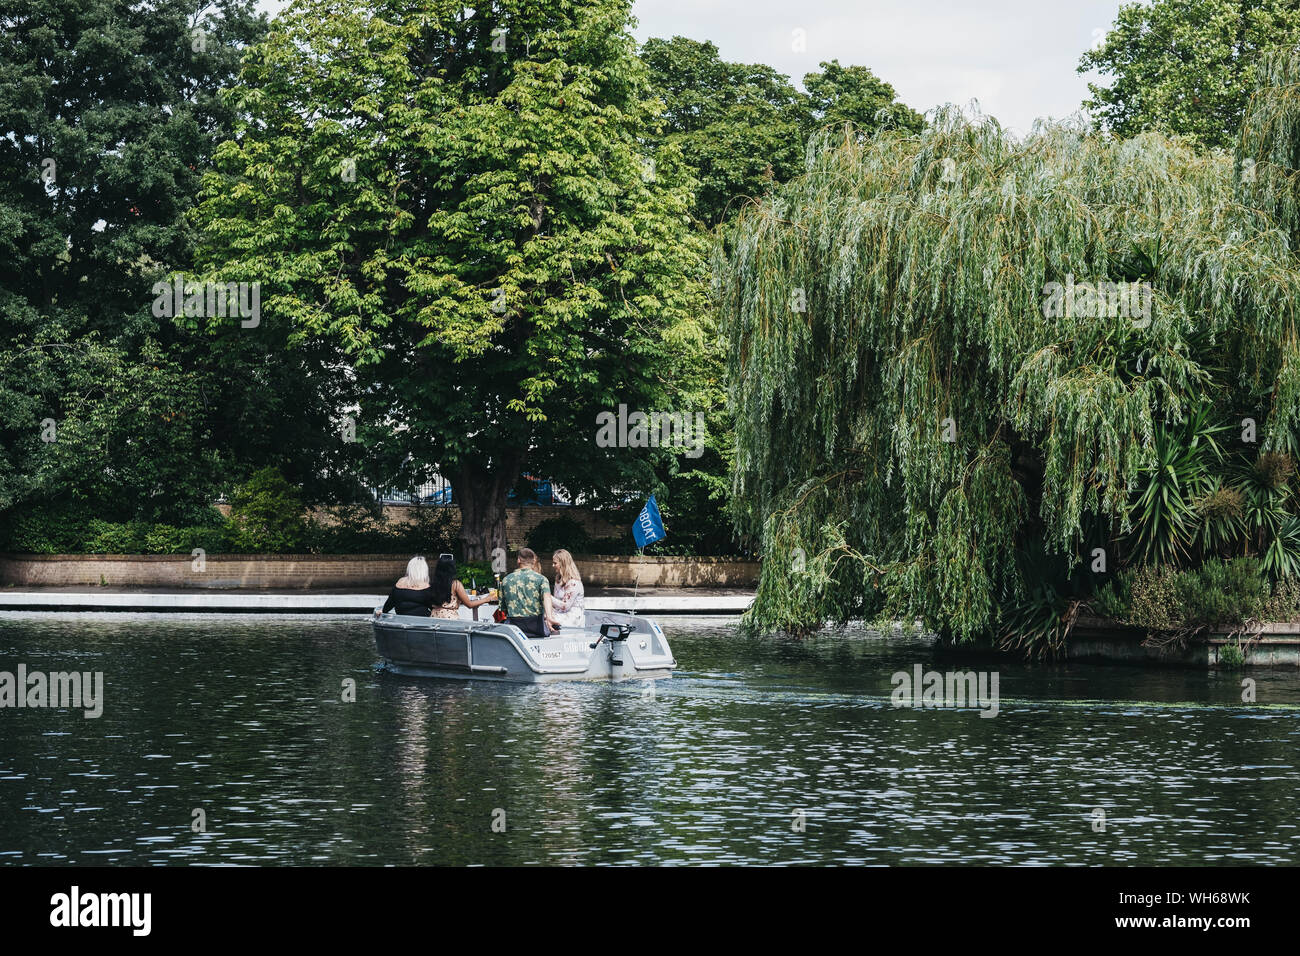 London, UK - July 18, 2019: People having a picnic on a boat on Regents Canal in Little Venice, London, a tranquil area of the city where the Grand Un Stock Photo